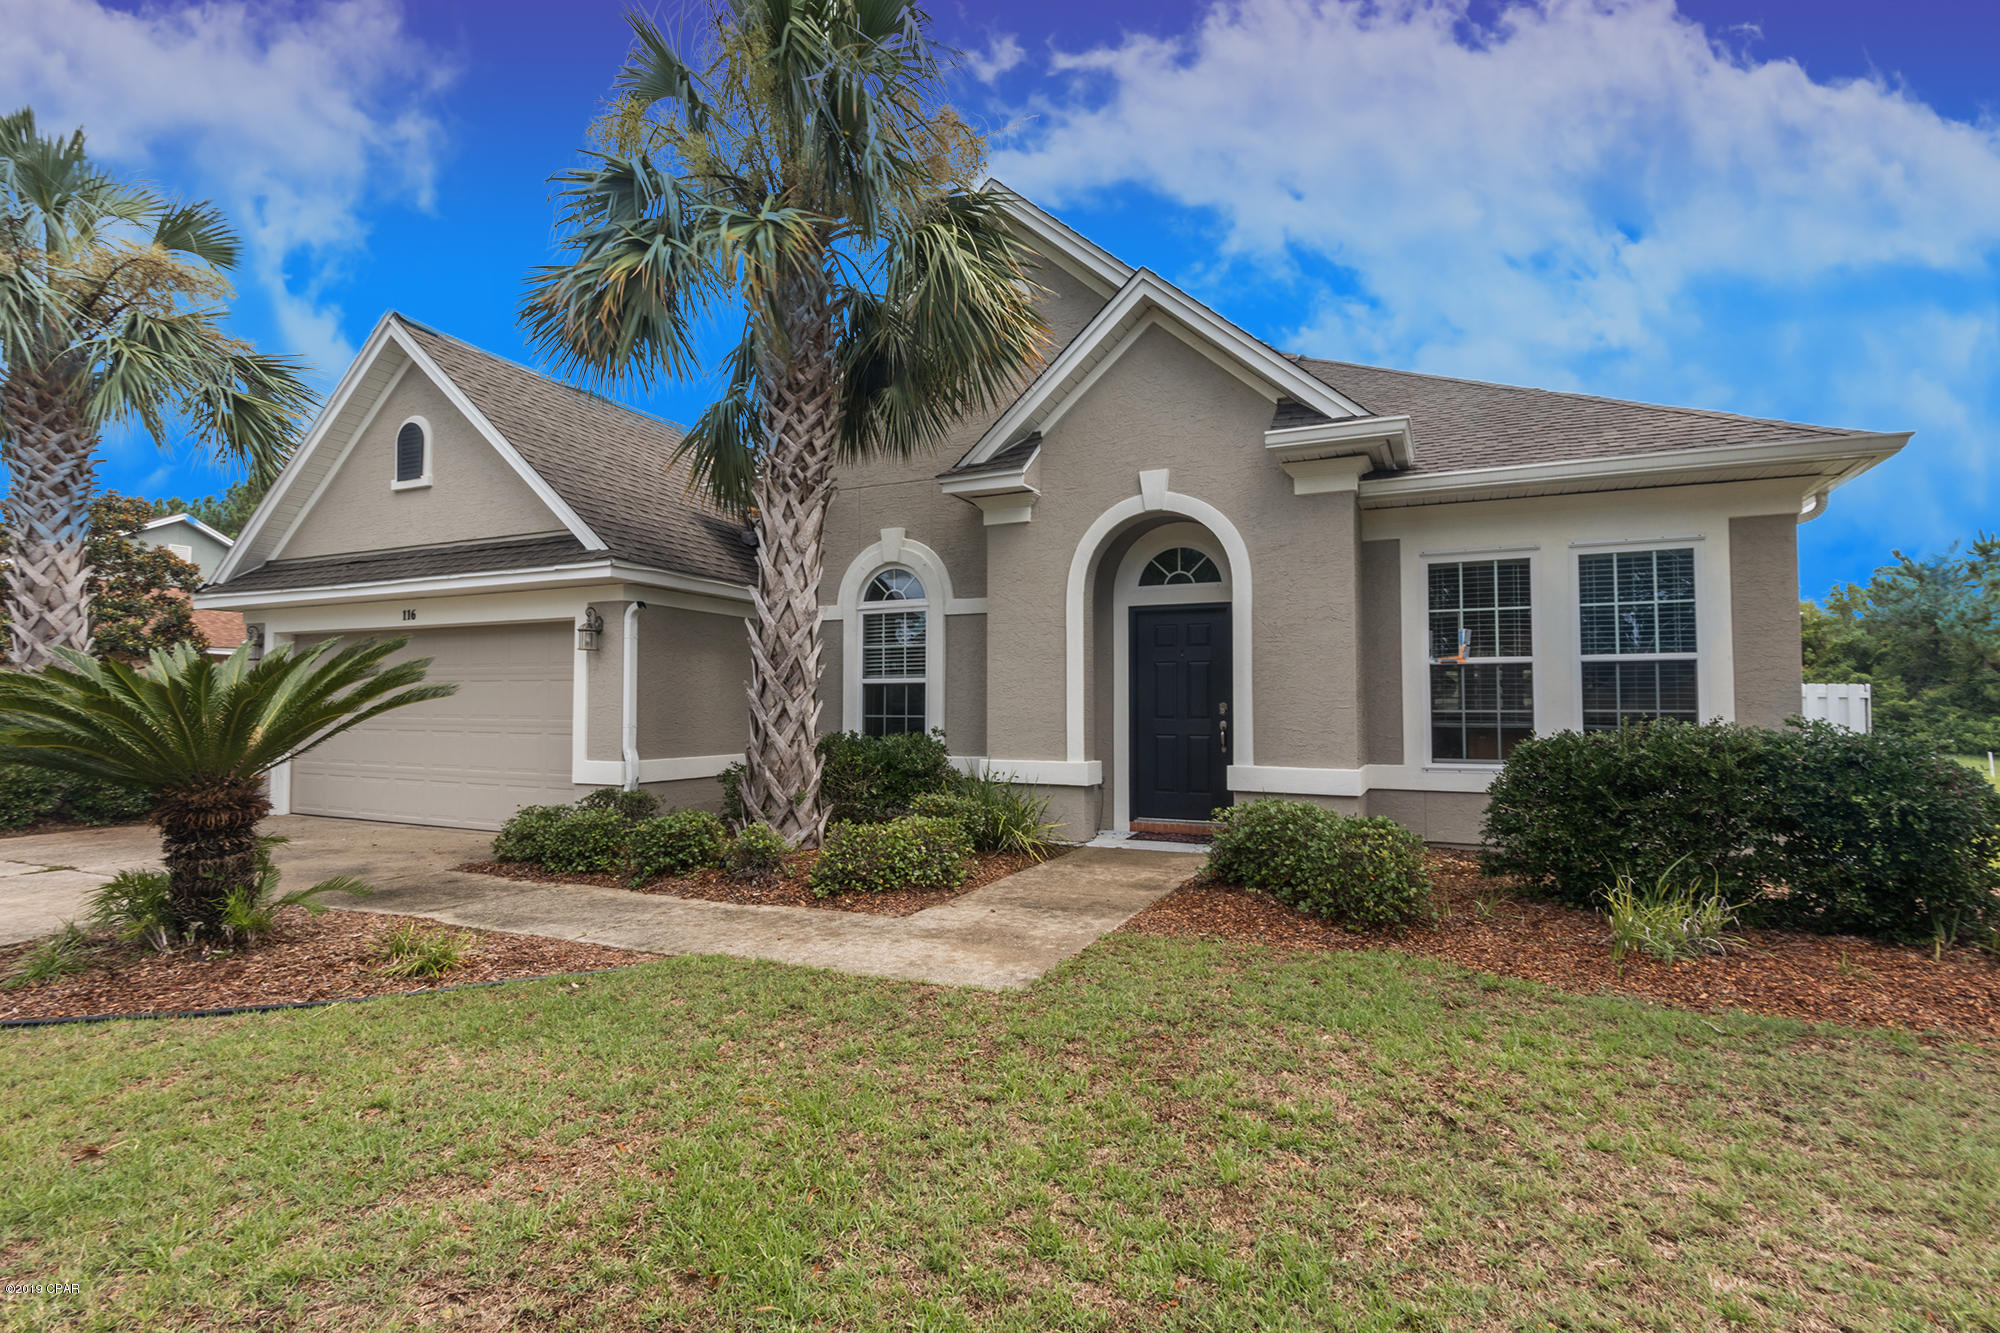 MLS Property 686049 for sale in Panama City Beach